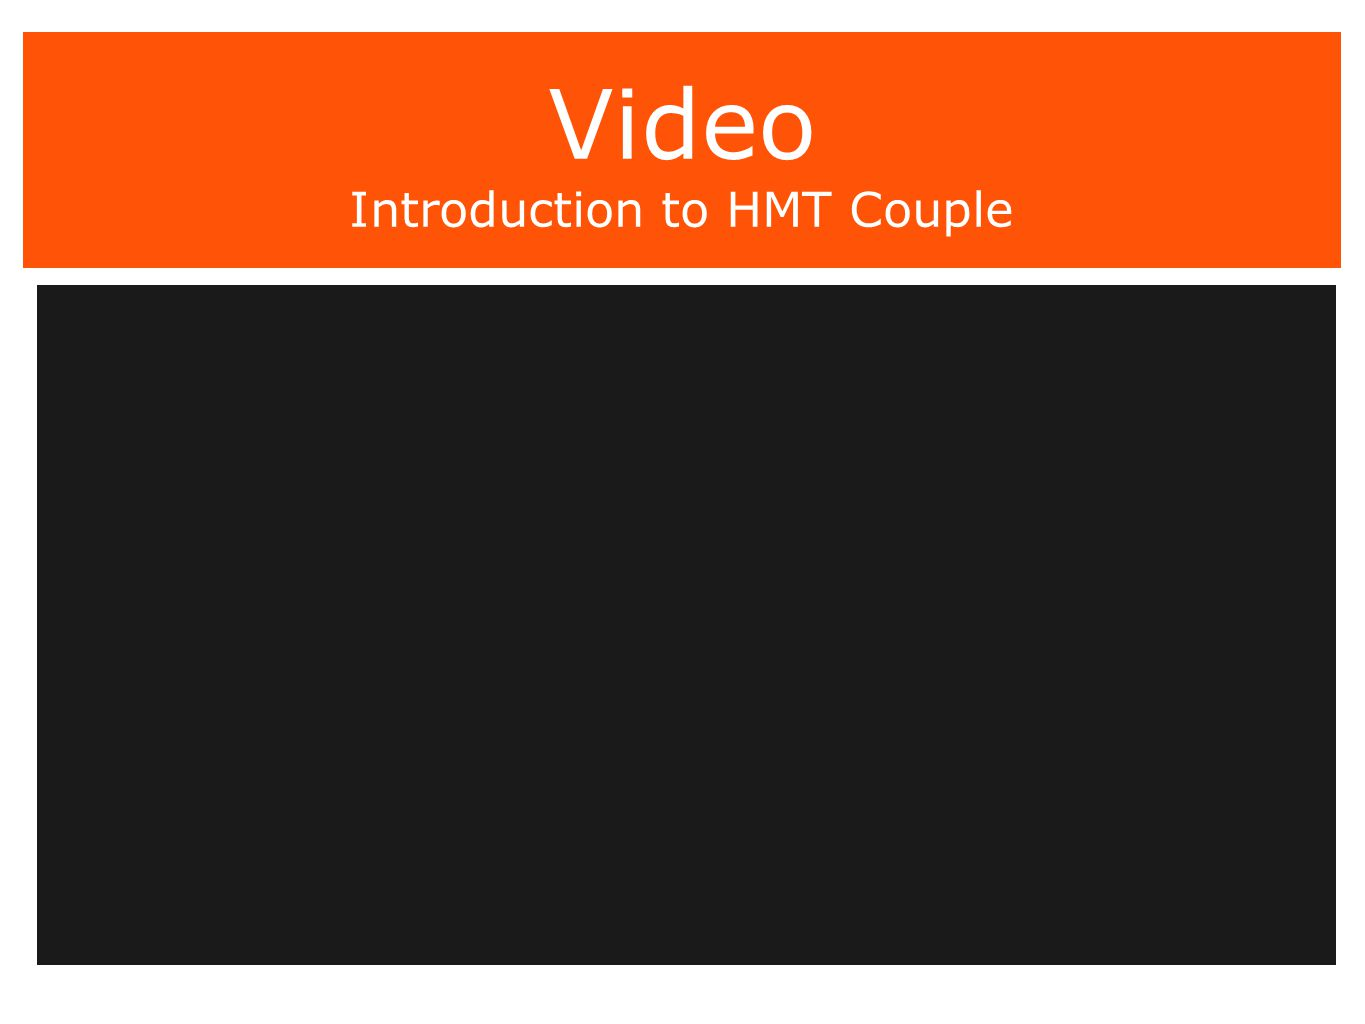 Video Introduction to HMT Couple